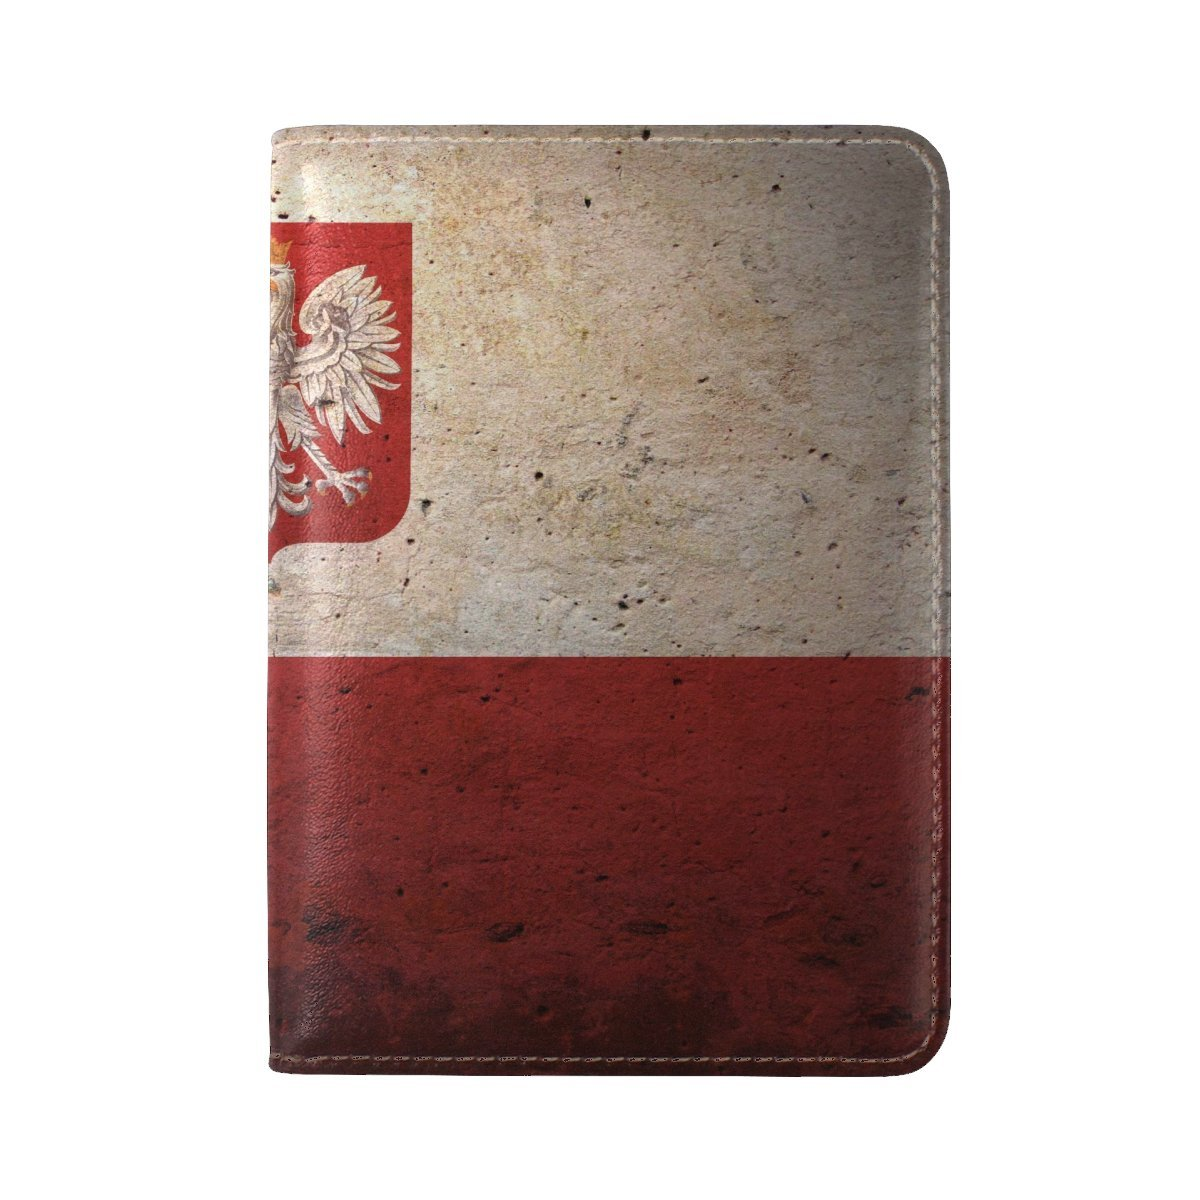 Flag Coat Of Arms Poland Symbols Texture Leather Passport Holder Cover Case Travel One Pocket